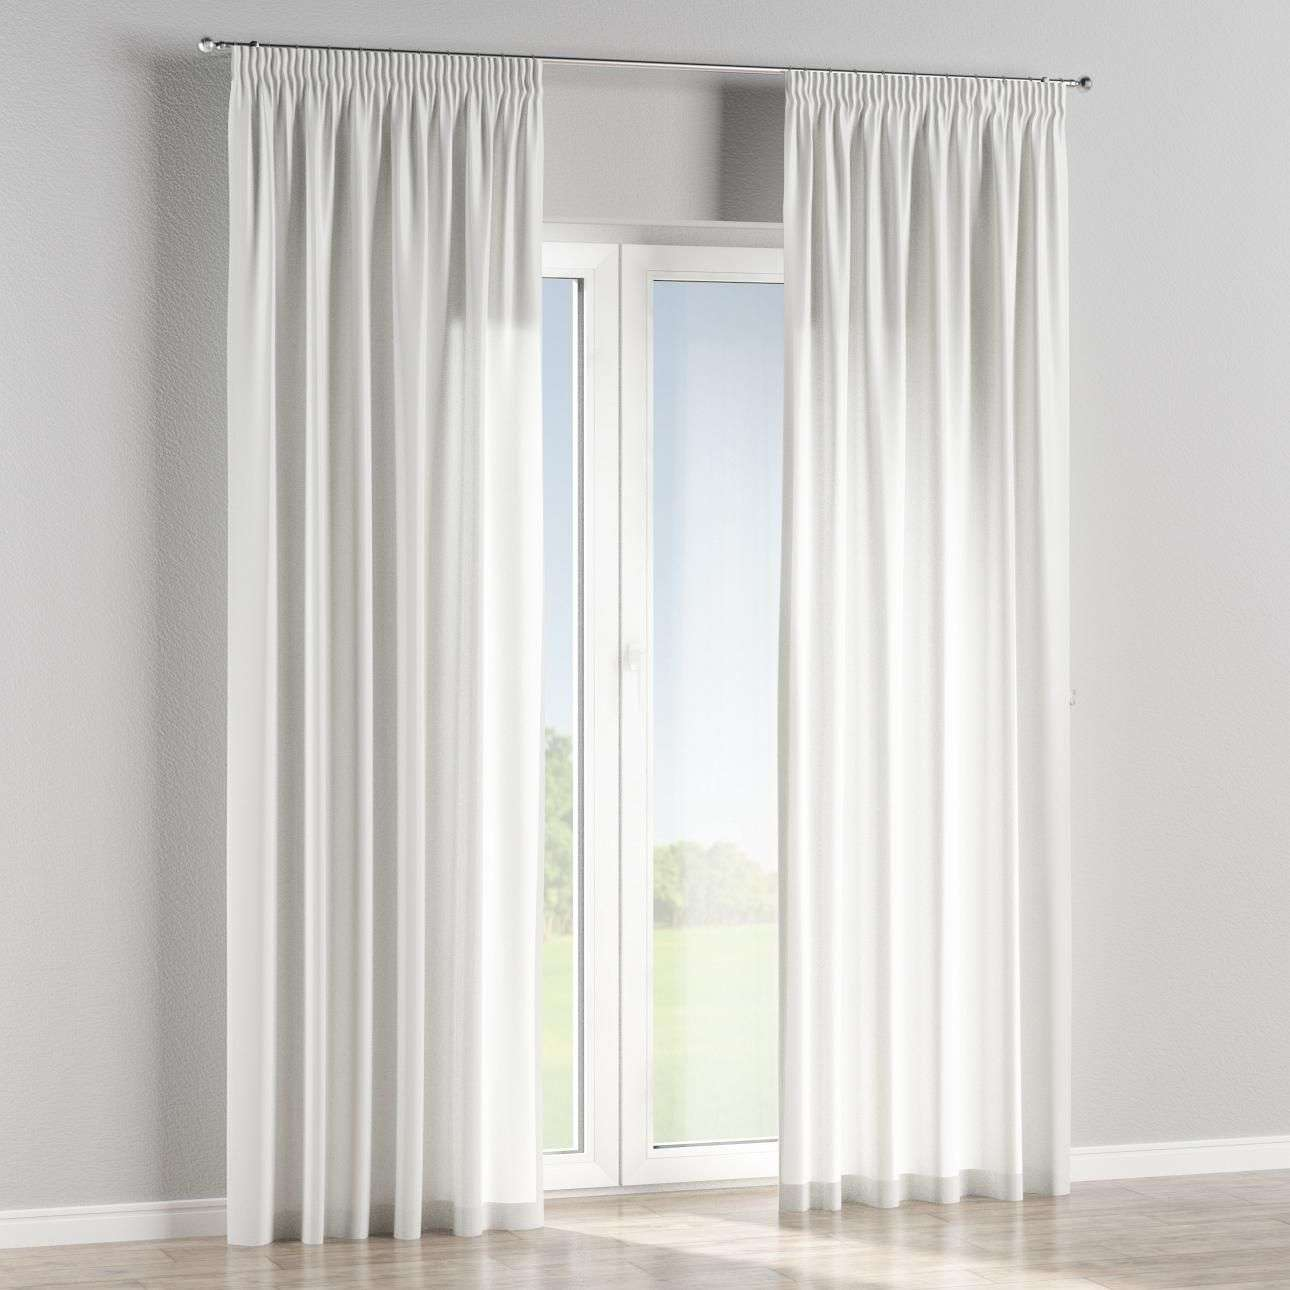 Pencil pleat curtains in collection Bristol, fabric: 125-09